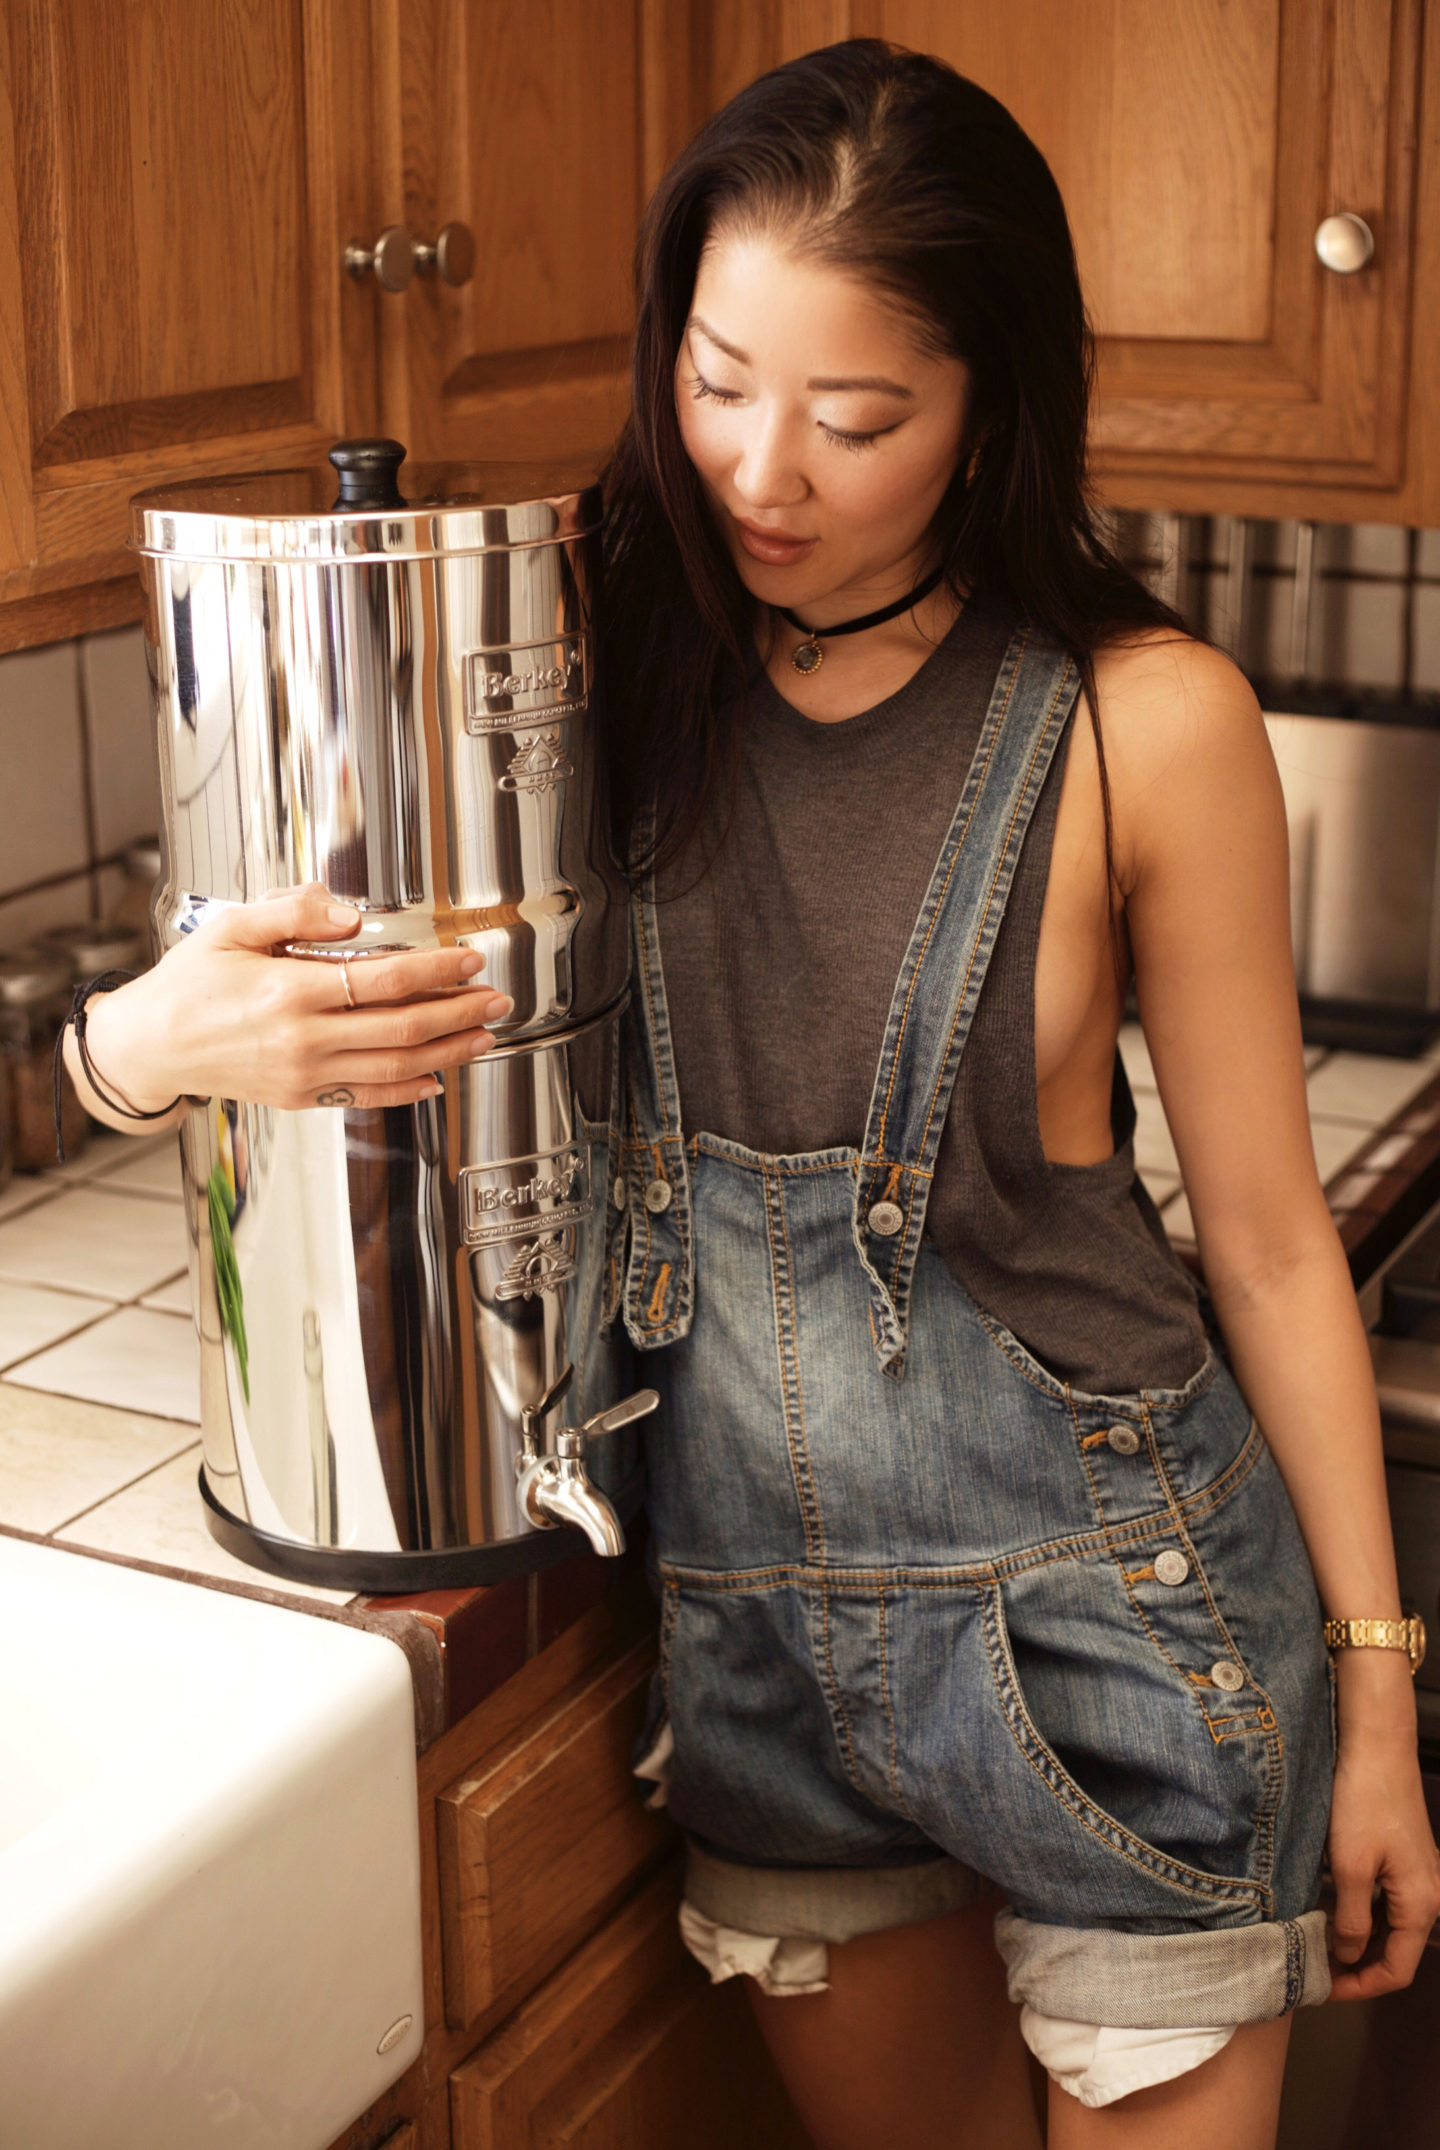 The best budget friendly water purification filtration system.